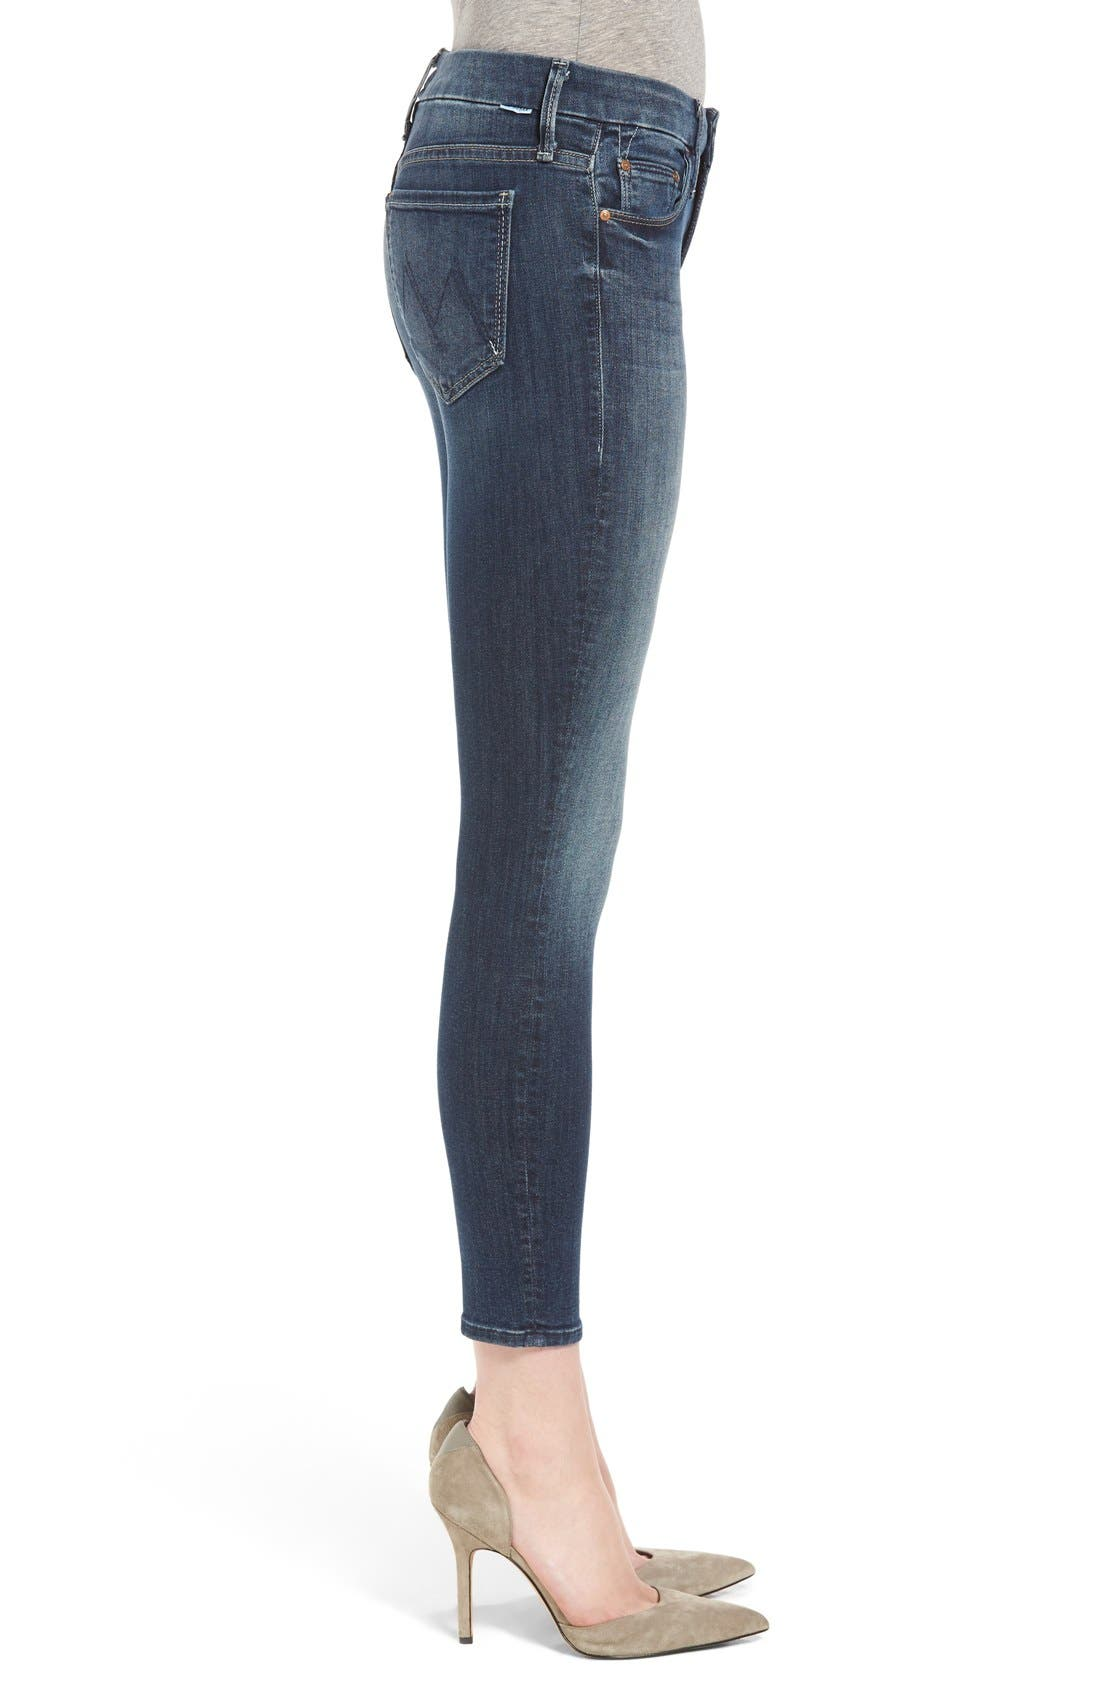 'The Looker' Crop Skinny Jeans,                             Alternate thumbnail 6, color,                             439